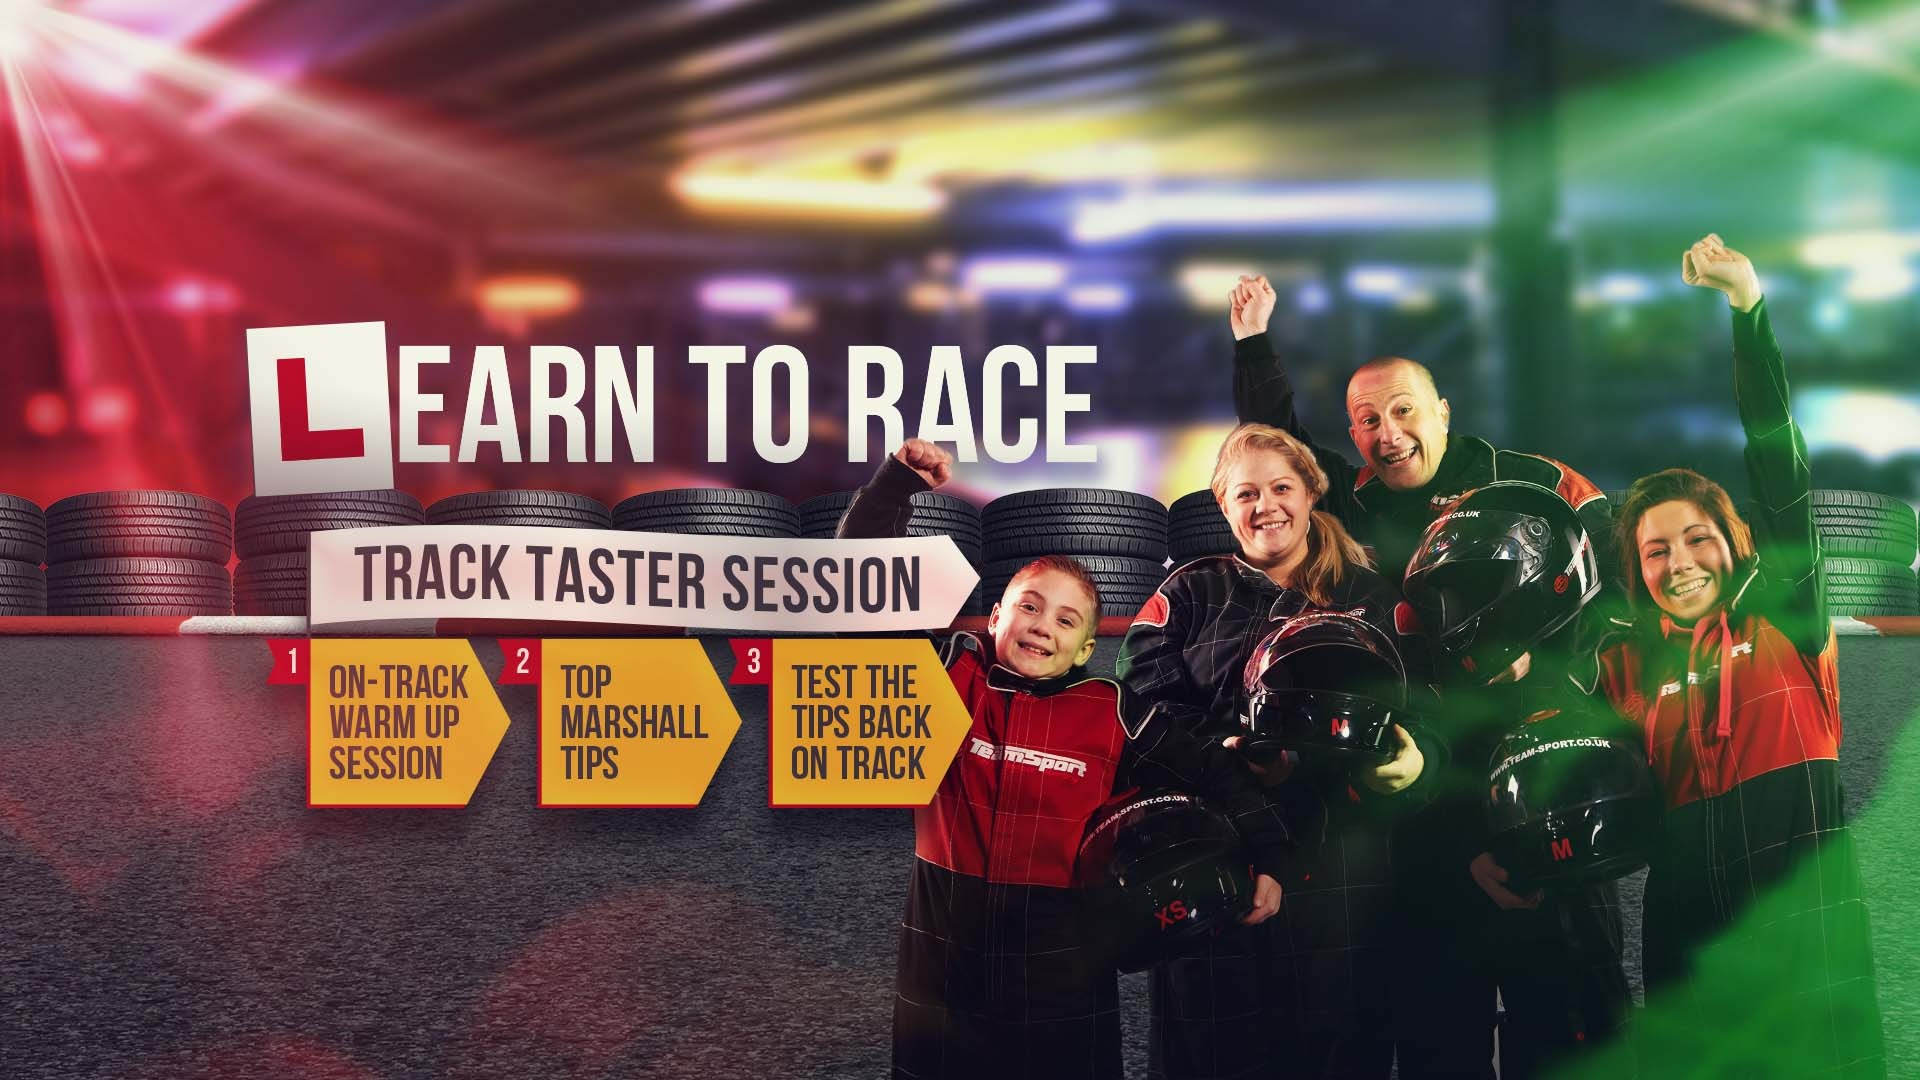 Kids & Families - Track Taster Sessions